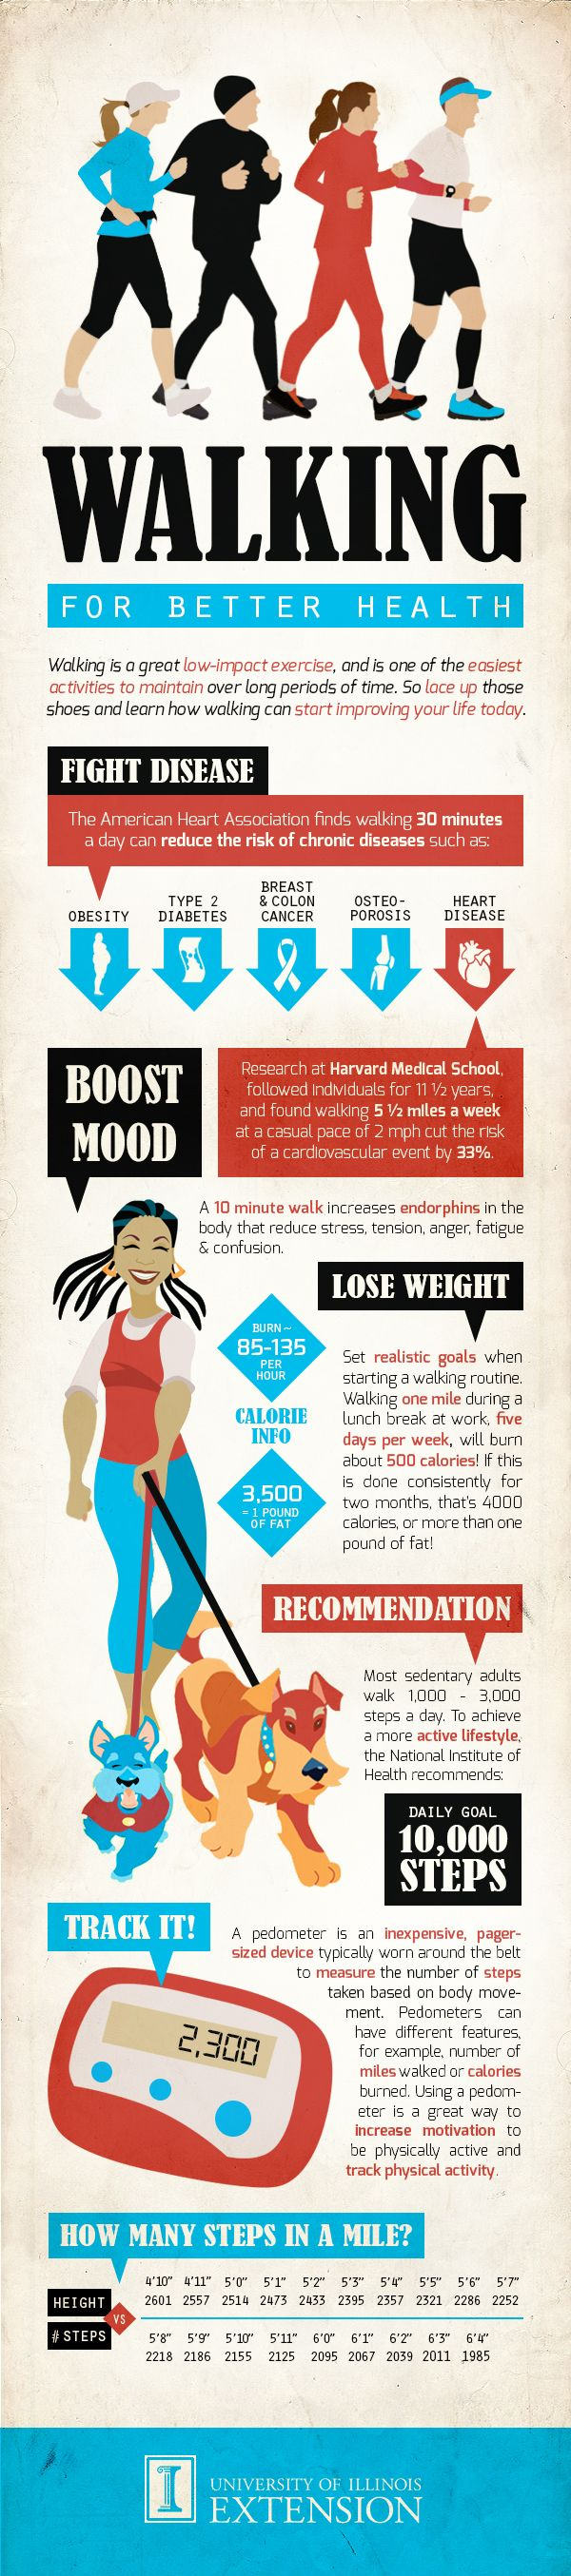 Walking for Better Health #infographic